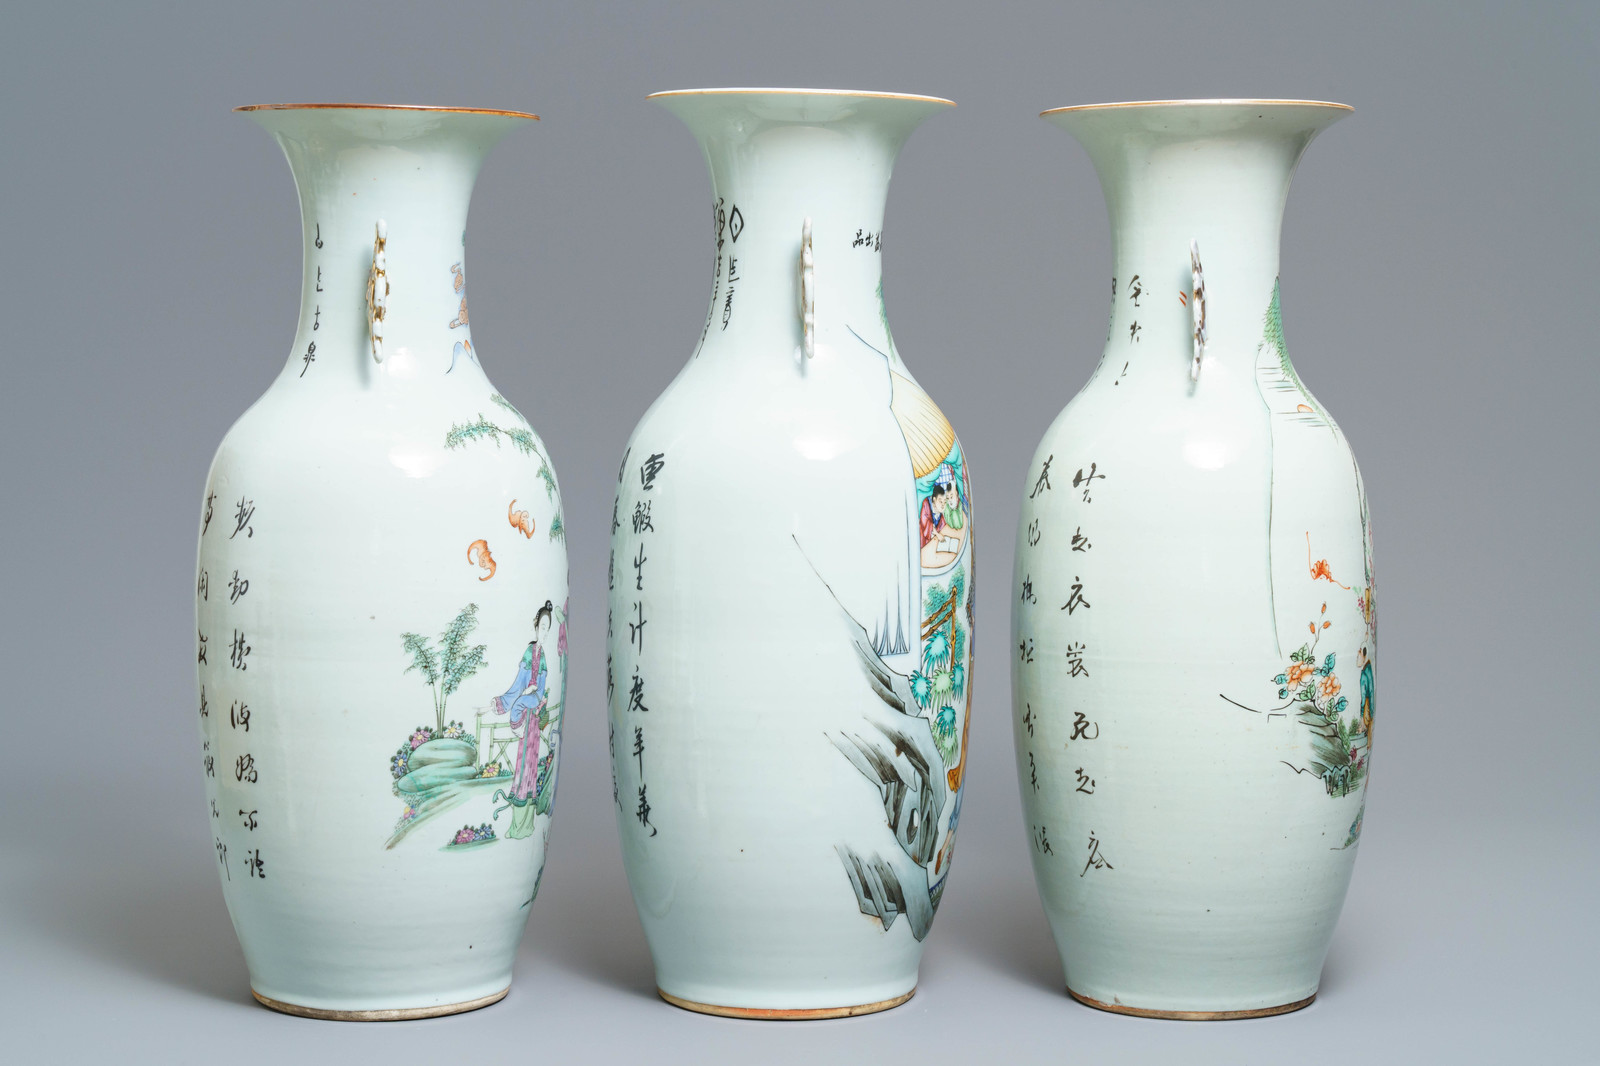 Lot 23 - Three Chinese famille rose vases with figural design, 19/20th C.